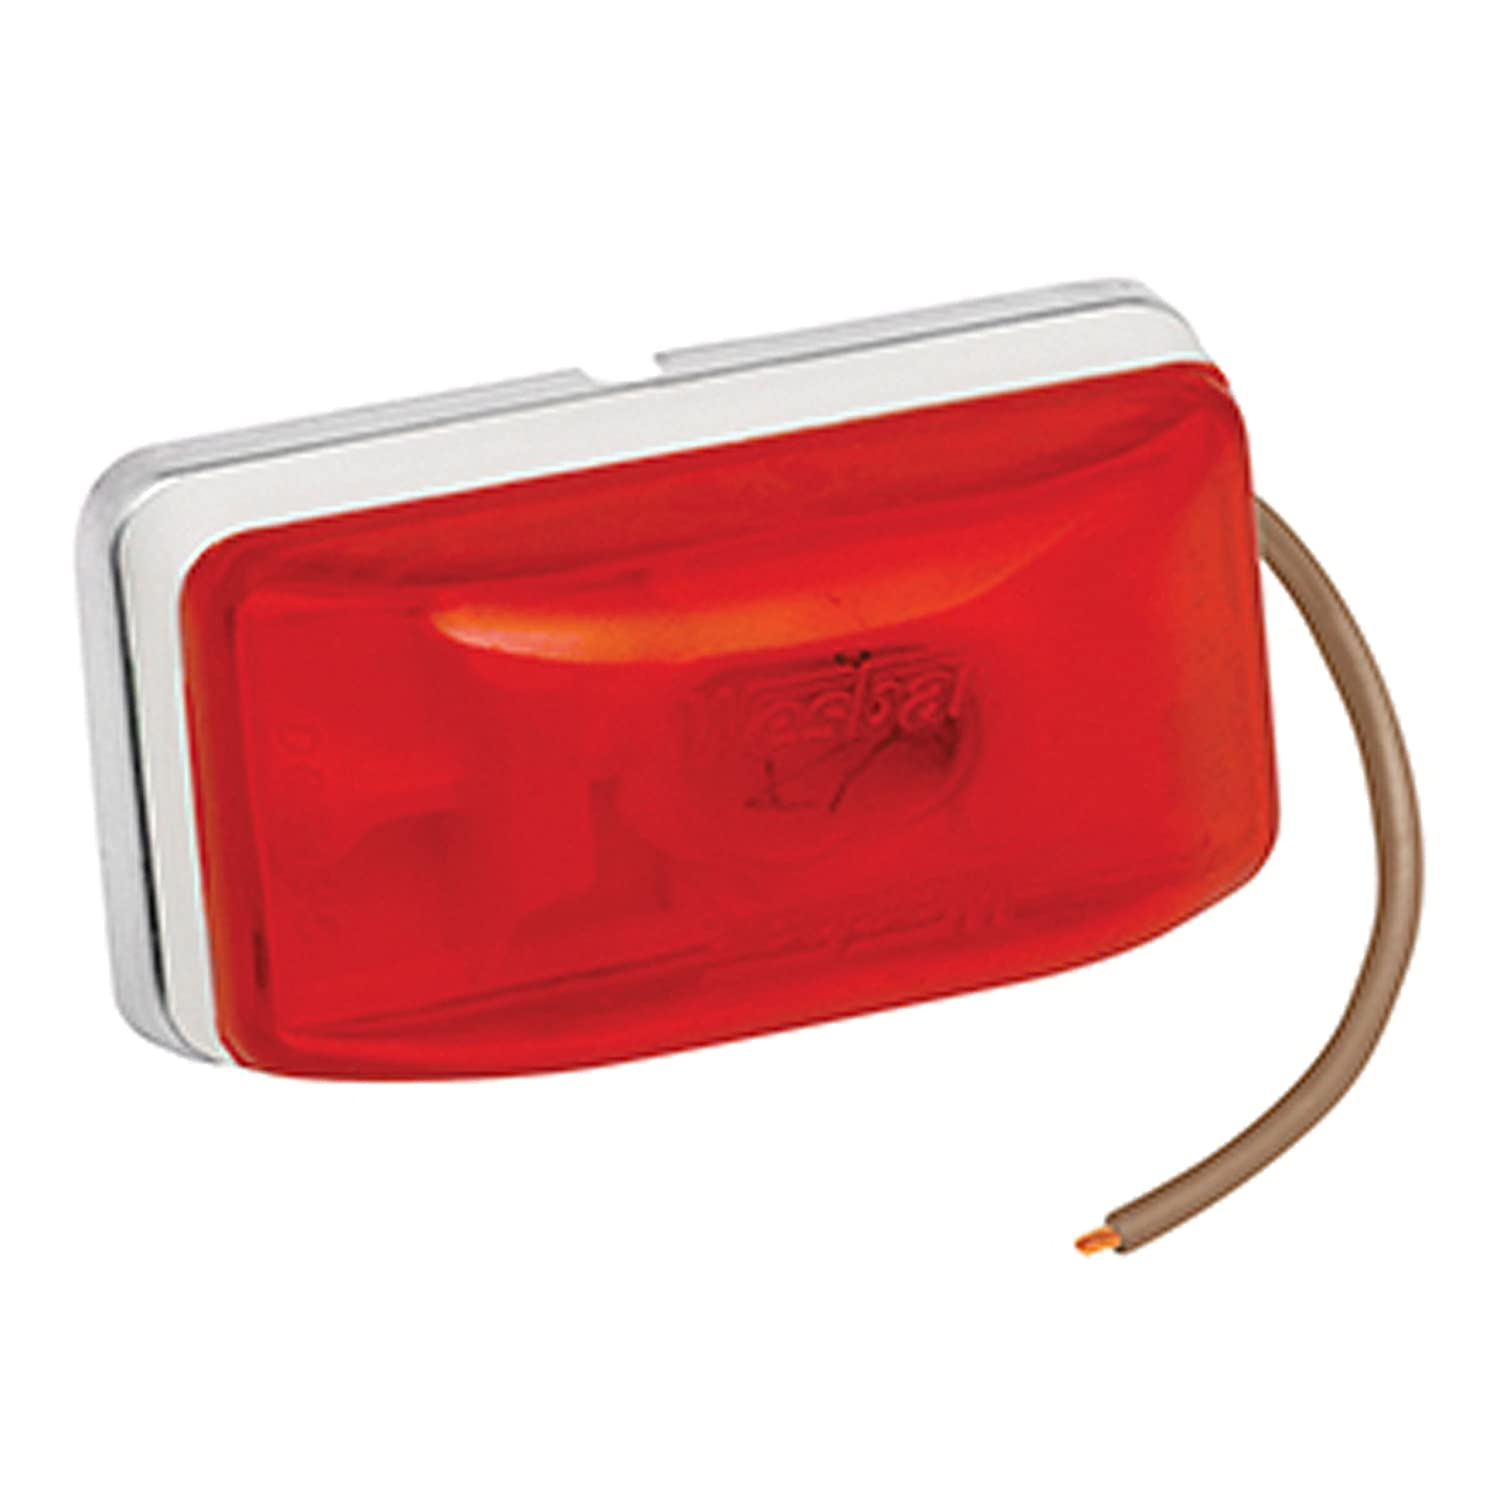 Wesbar 203233 Side Marker/Clearance Light Hidden Hitch WSB3233